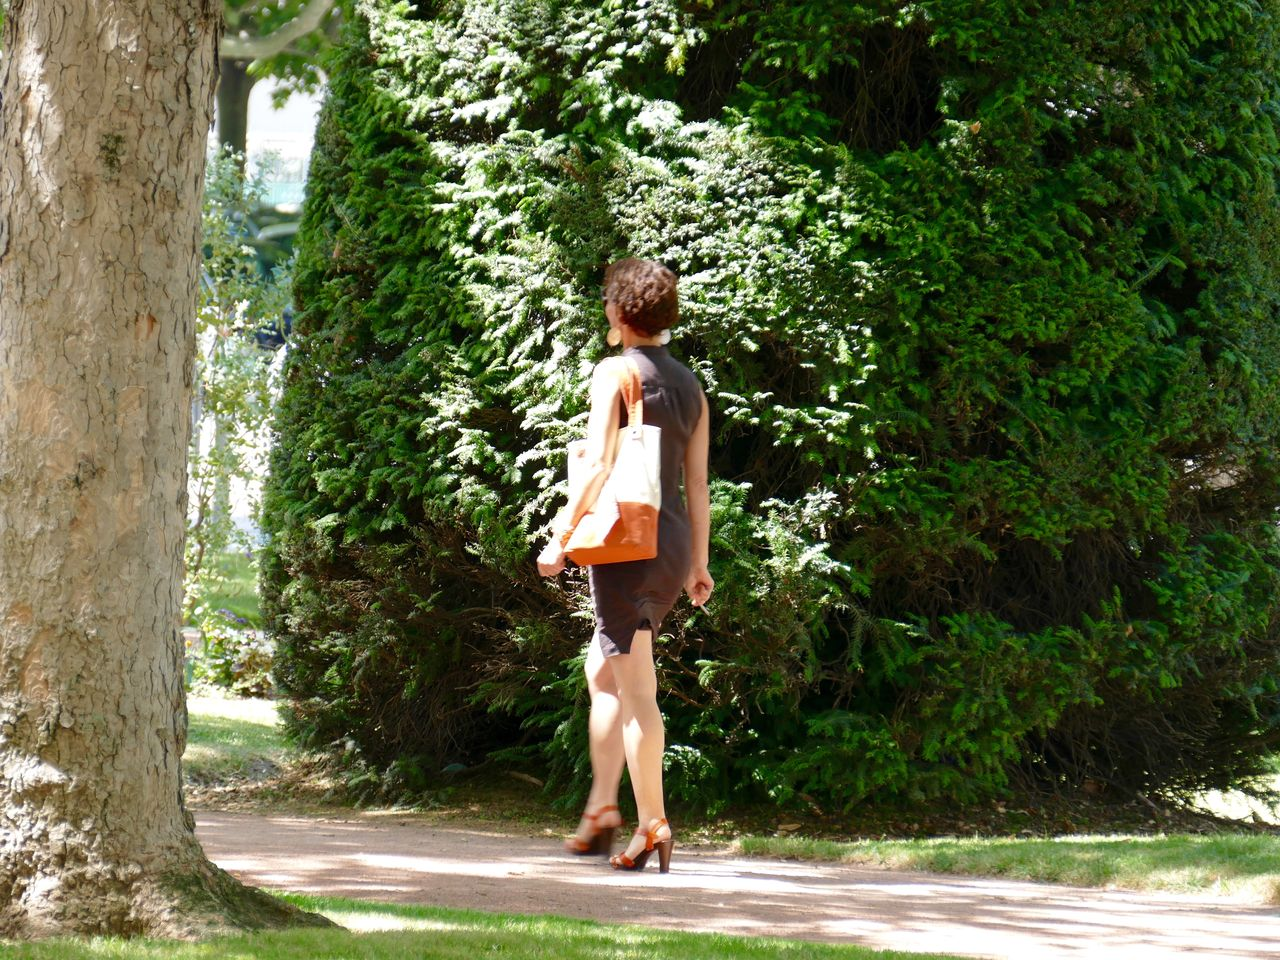 tree, full length, rear view, young adult, one person, walking, standing, summer, one young woman only, day, leisure activity, outdoors, young women, one woman only, real people, adults only, beautiful woman, adult, nature, women, only women, people